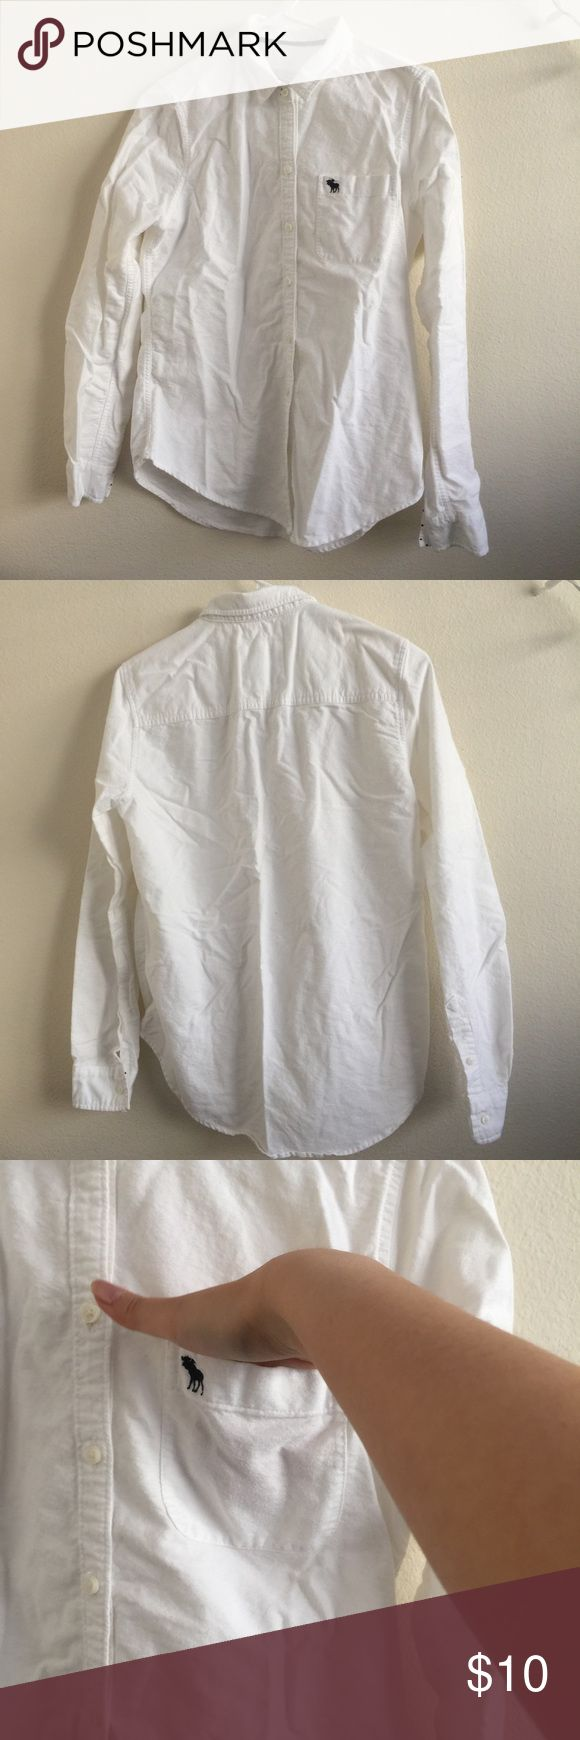 White button down collared shirt White collared button down shirt. Medium weight material. Not sheer. Navy blue polka dot interior to cuffs of sleeves. Double button sleeve closure. Has front pocket. Size medium from Abercrombie and fitch. Never worn!    🚫Trades 🚫Off posh transactions or 🅿️🅿️ 🚫negotiating in comments  🚷lowballs blocked ✅REASONABLE offers ✅Bundle for 30% off for 3 items or more. Abercrombie & Fitch Tops Button Down Shirts